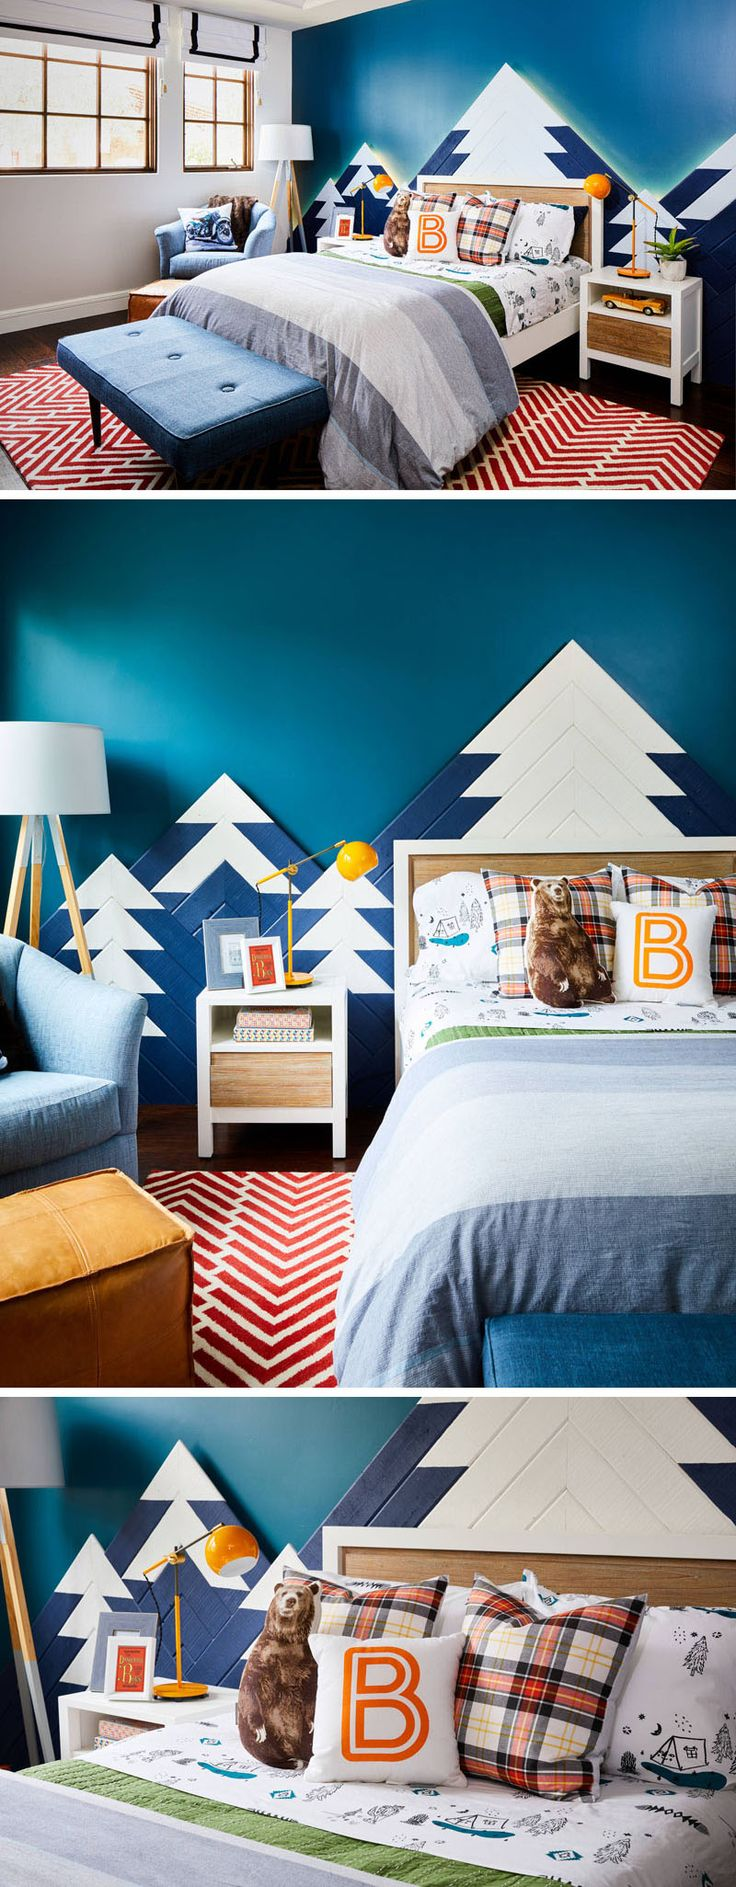 Best Images About Kid Bedrooms On Pinterest Diy Bed Bunk - Kids bedroom